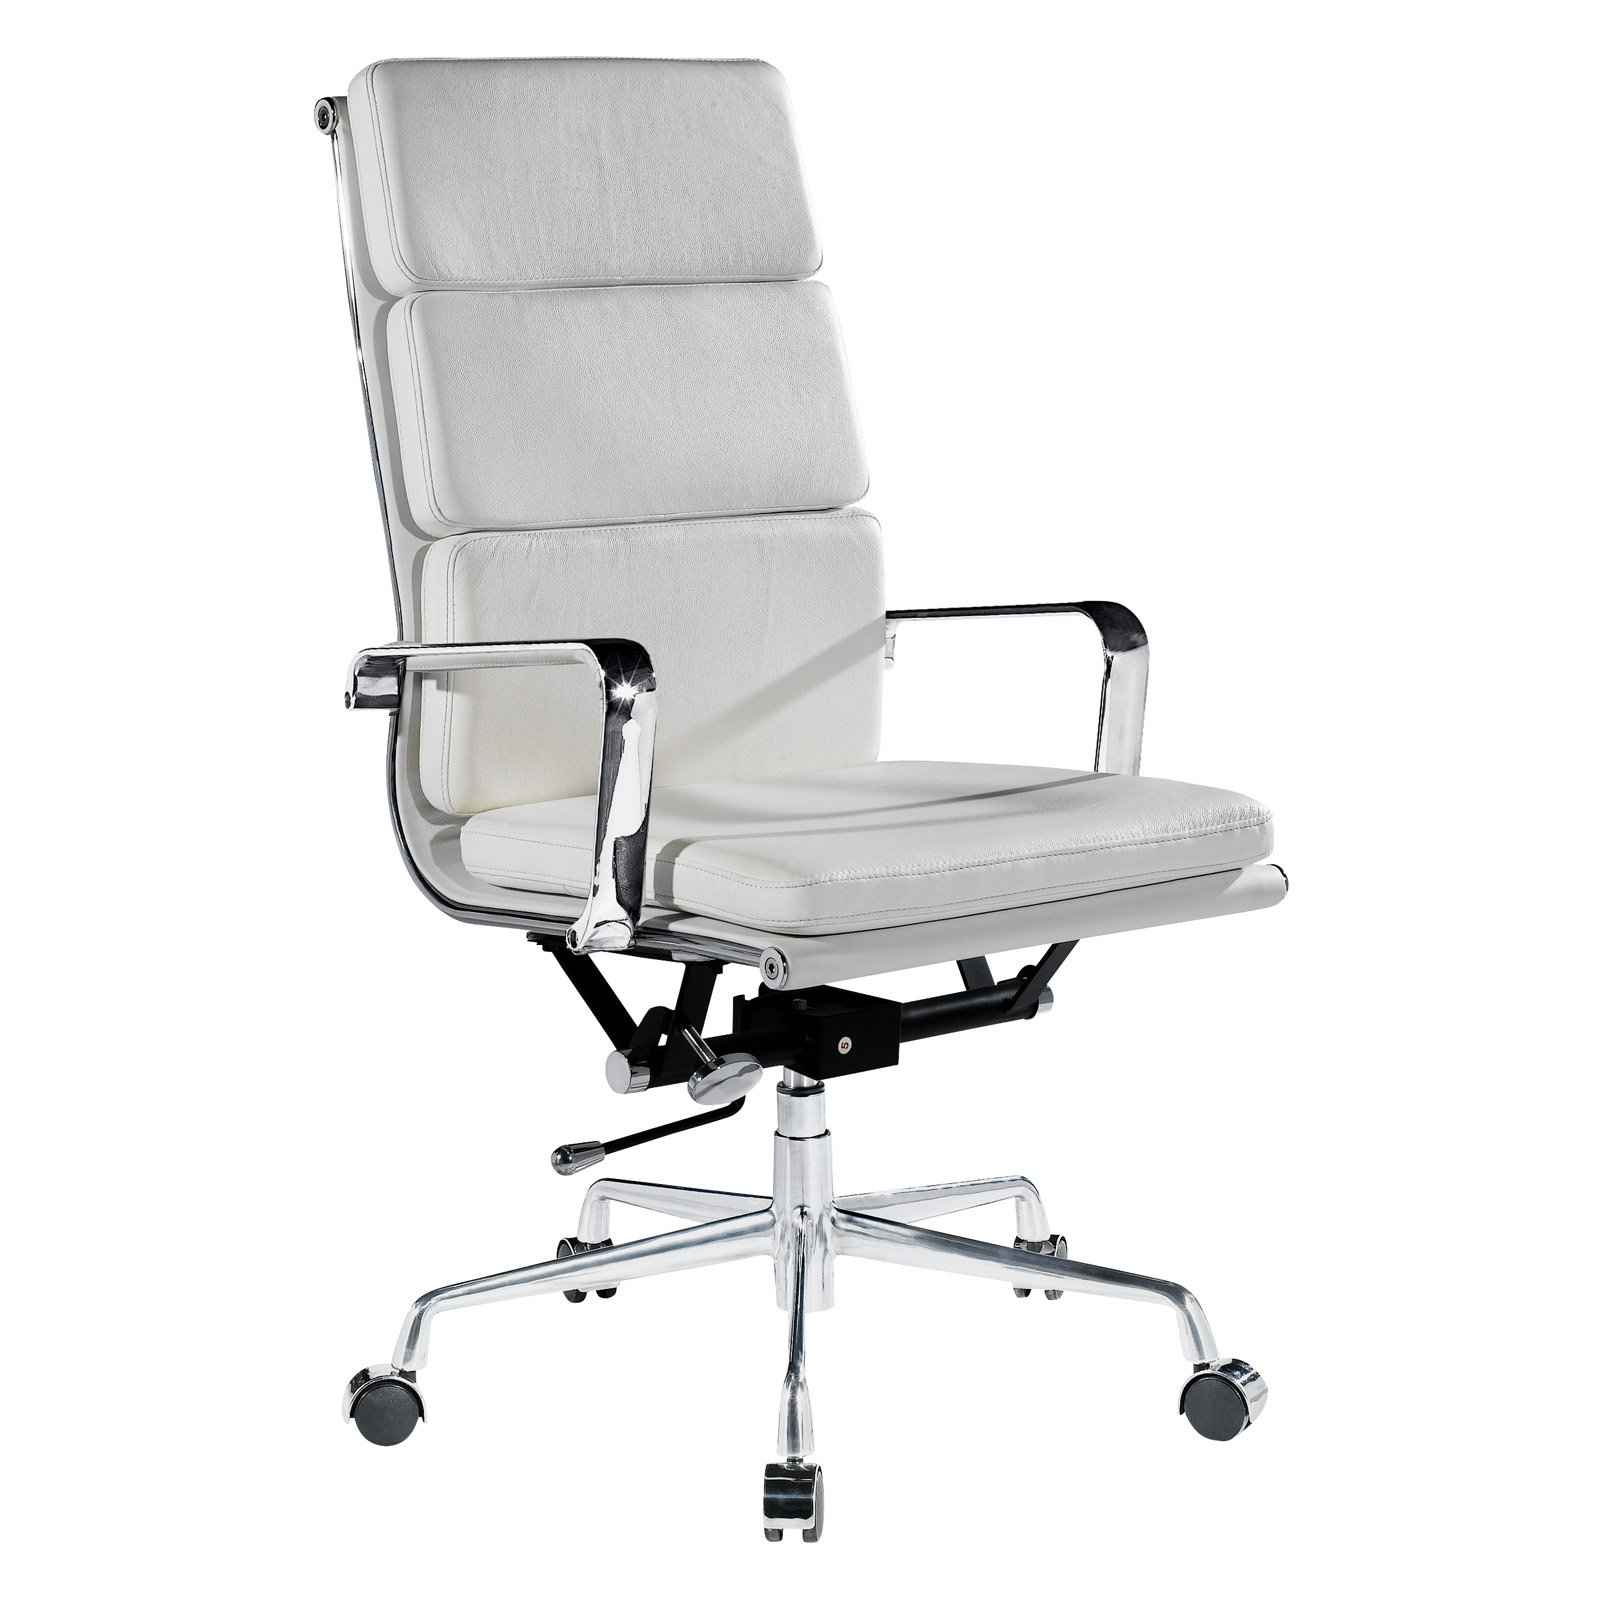 Executive leather office chair office furniture for Chair design leather